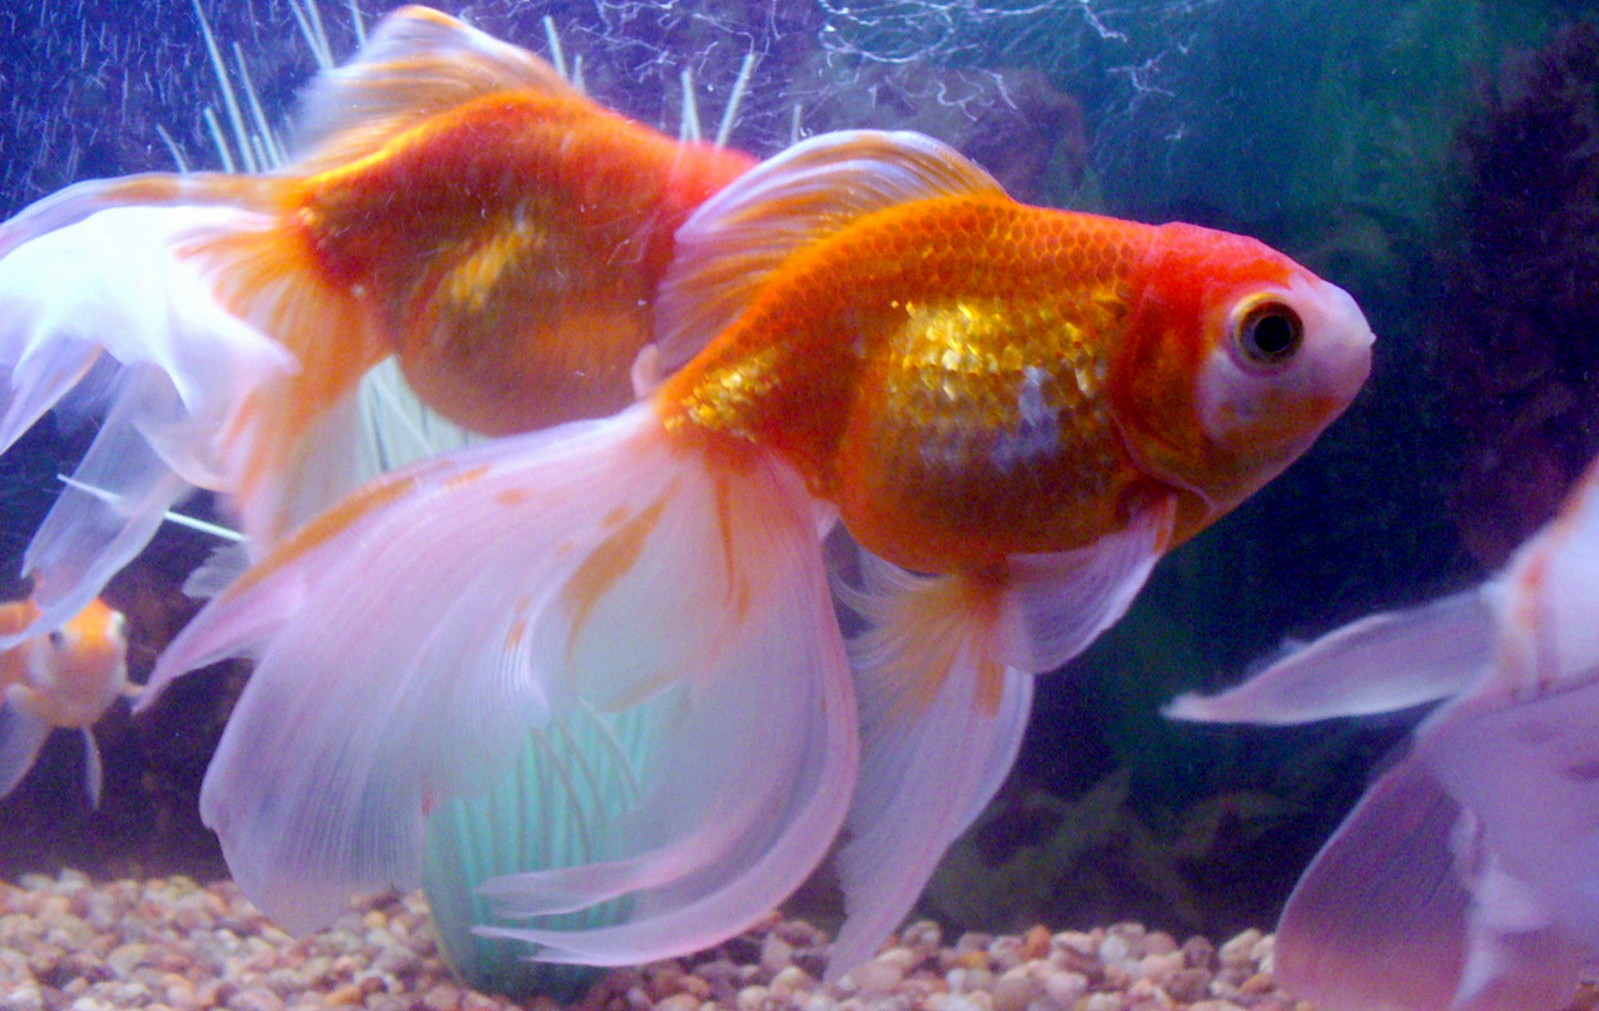 Fantail goldfish - photo#14